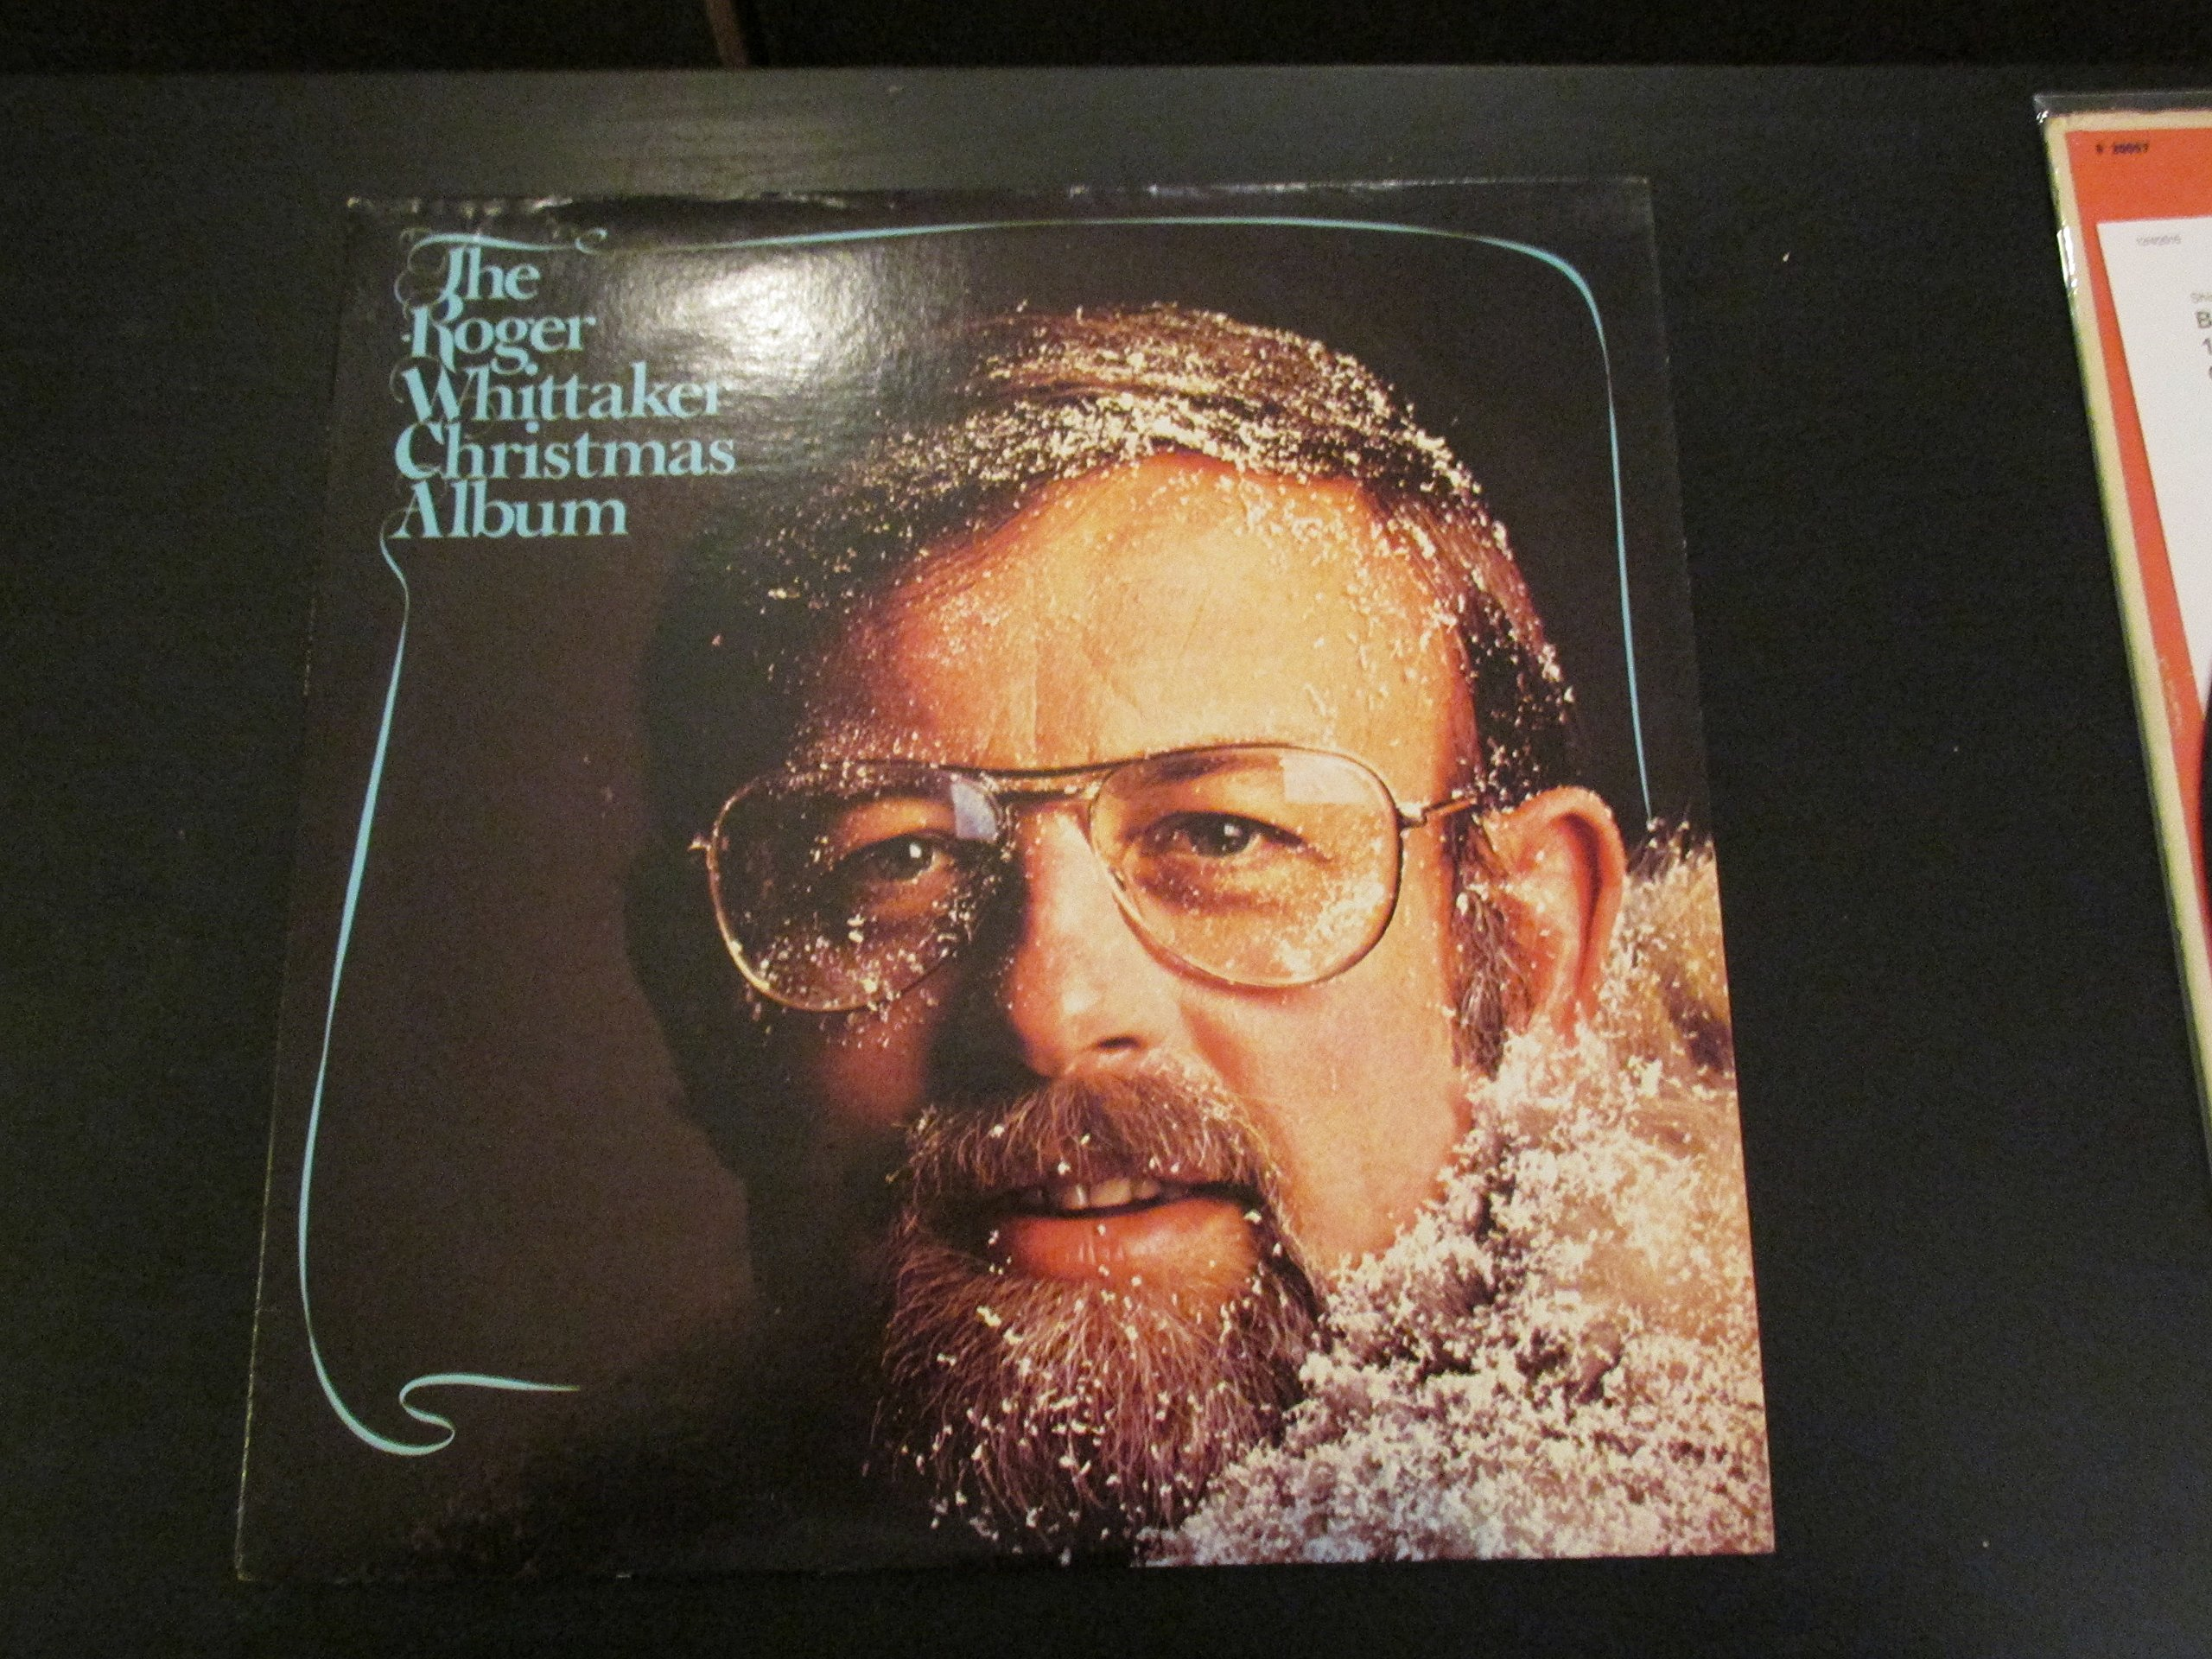 The Roger Whittaker Christmas Album by RCA